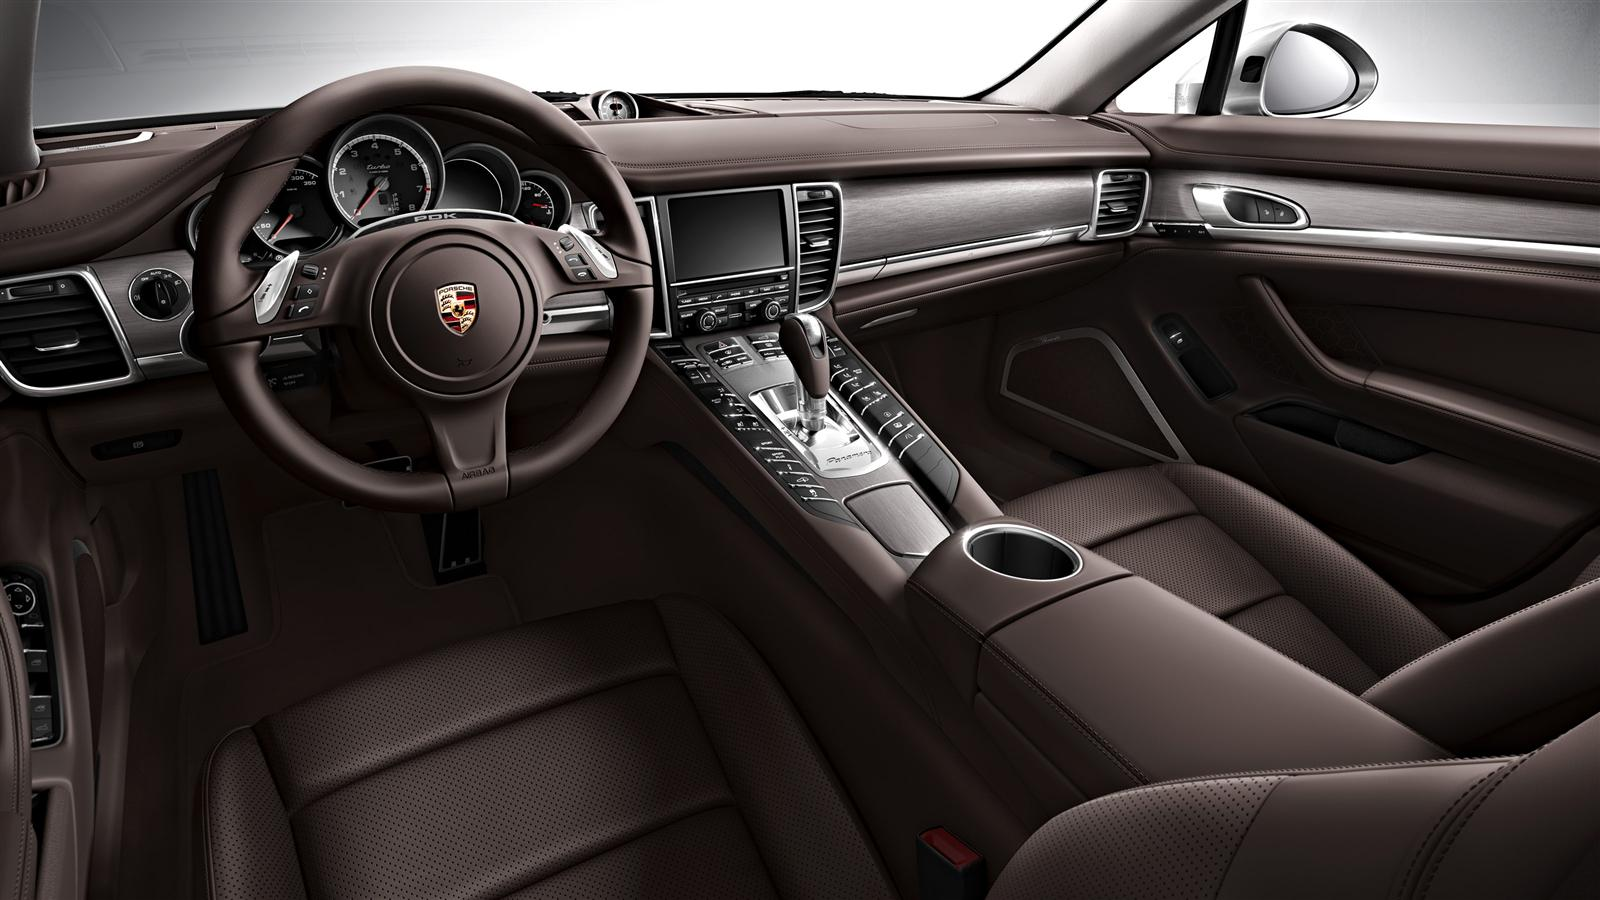 porsche panamera turbo s 907 specs photos 2013 2014 2015 2016 autoevolution. Black Bedroom Furniture Sets. Home Design Ideas